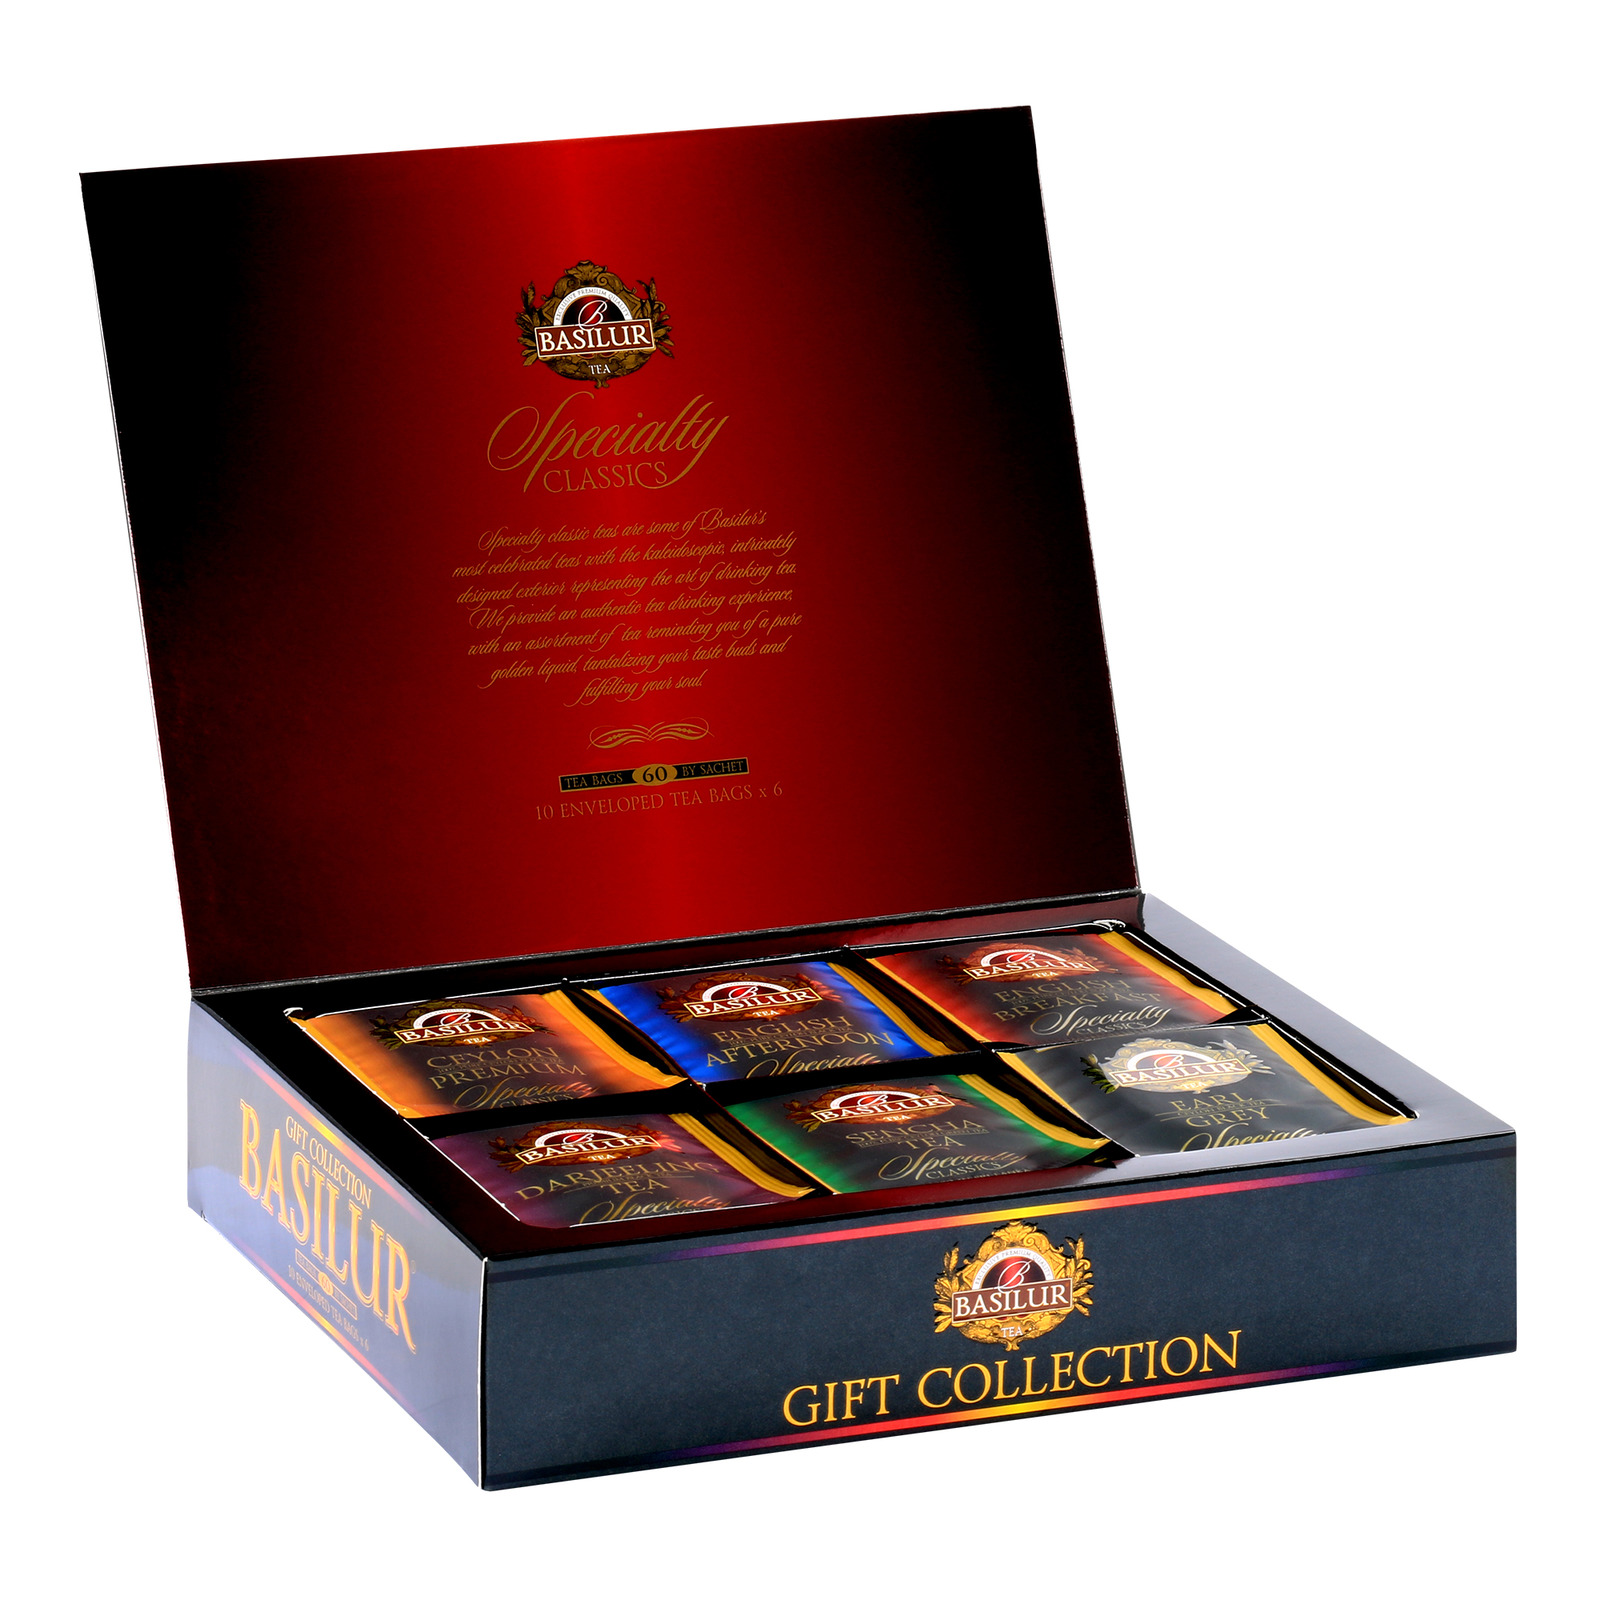 Basilur Gift Collection - Specialty Classics Assorted Tea